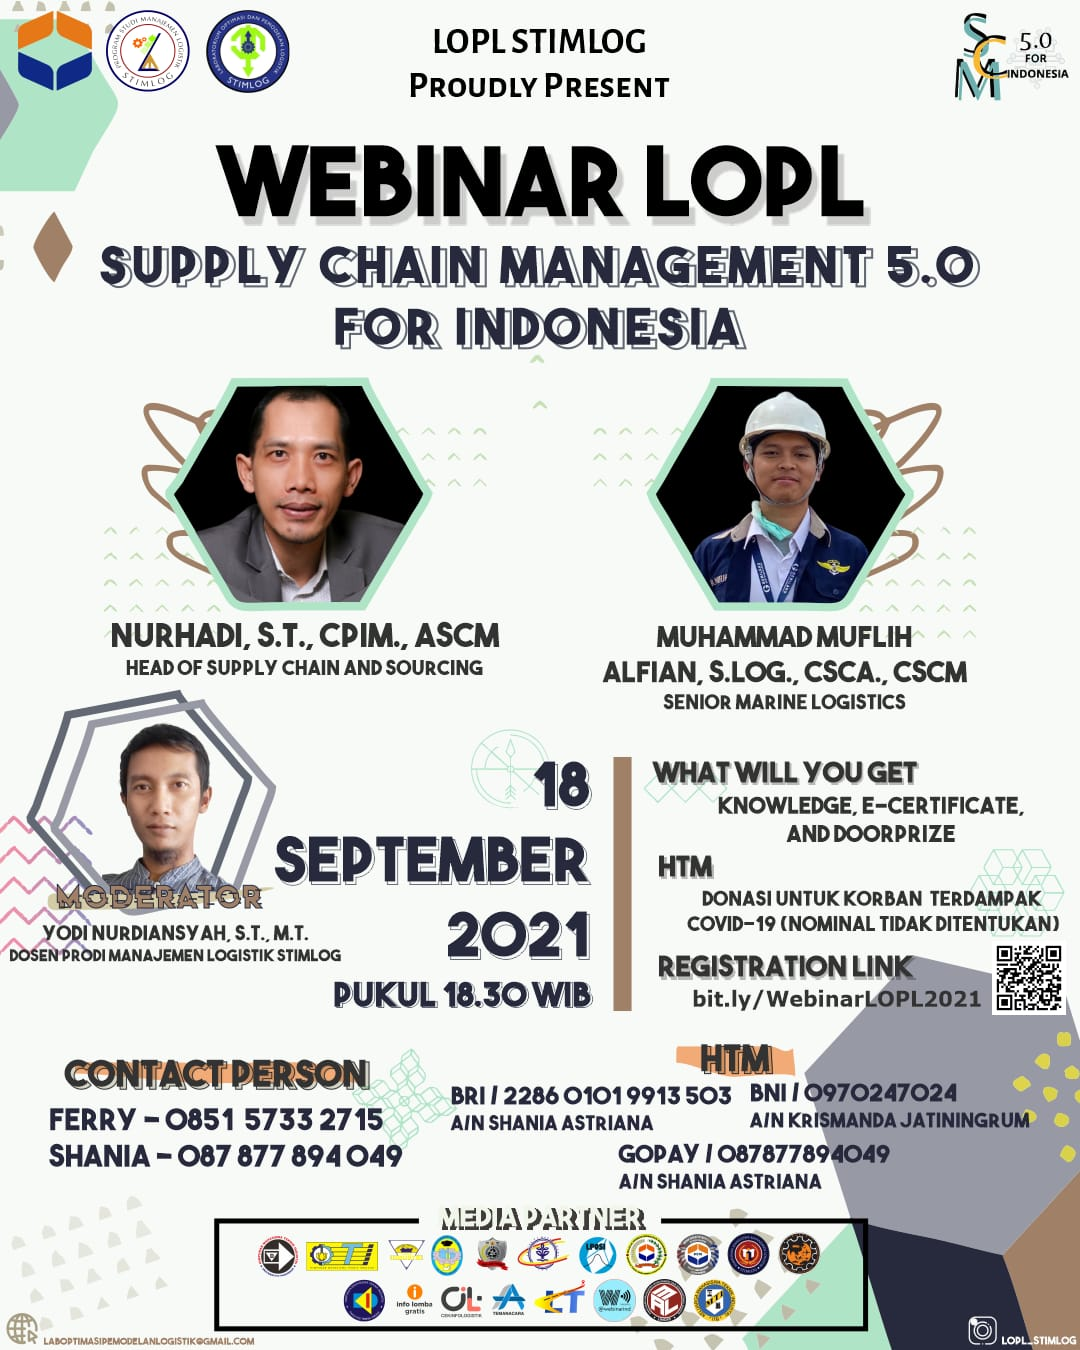 WEBINAR SUPPLY CHAIN MANAGEMENT 5.0 FOR INDONESIA